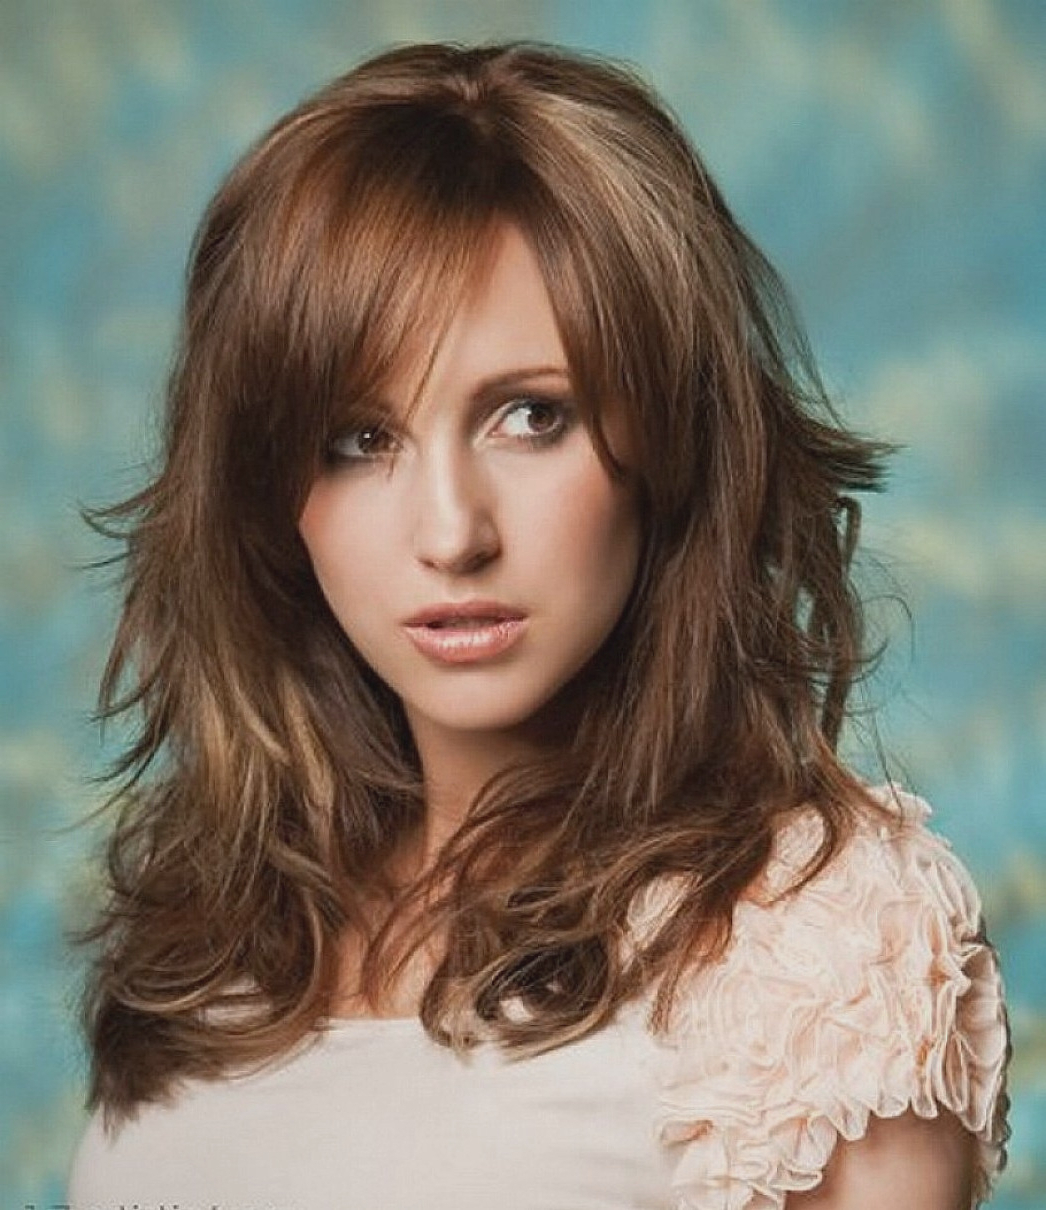 Haircut : Top Medium Length Haircuts Thick Wavy Hair Images Home With Recent Medium Haircuts For Thick Wavy Hair (View 18 of 20)